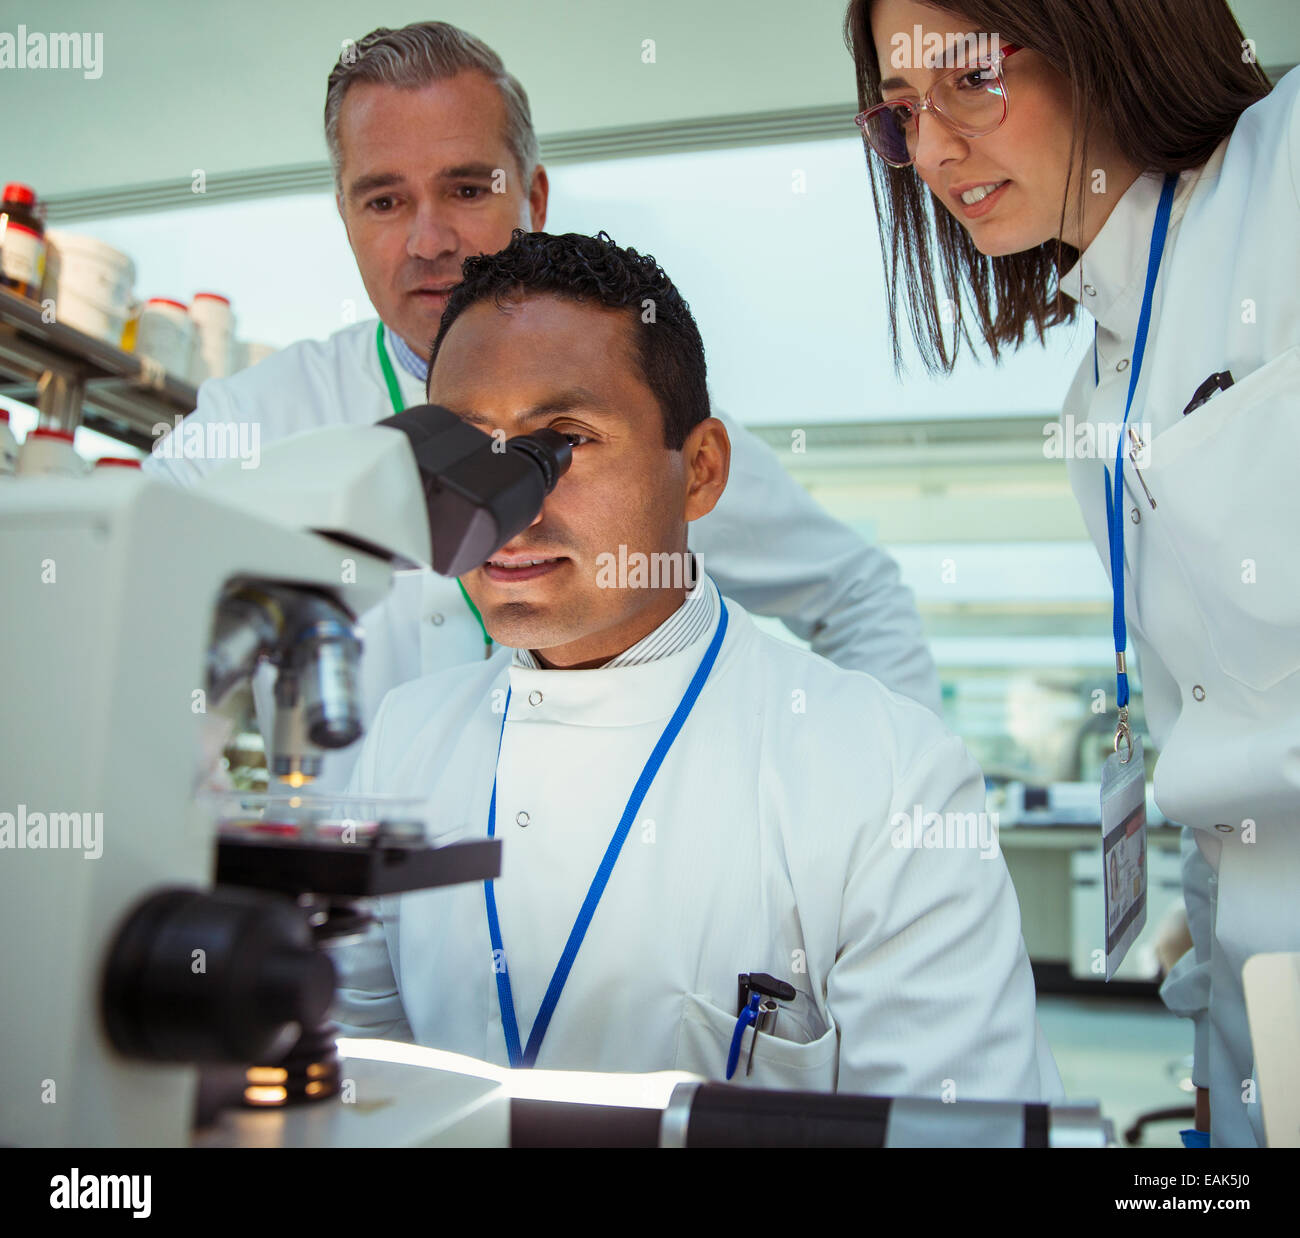 Scientists examining sample under microscope in laboratory - Stock Image